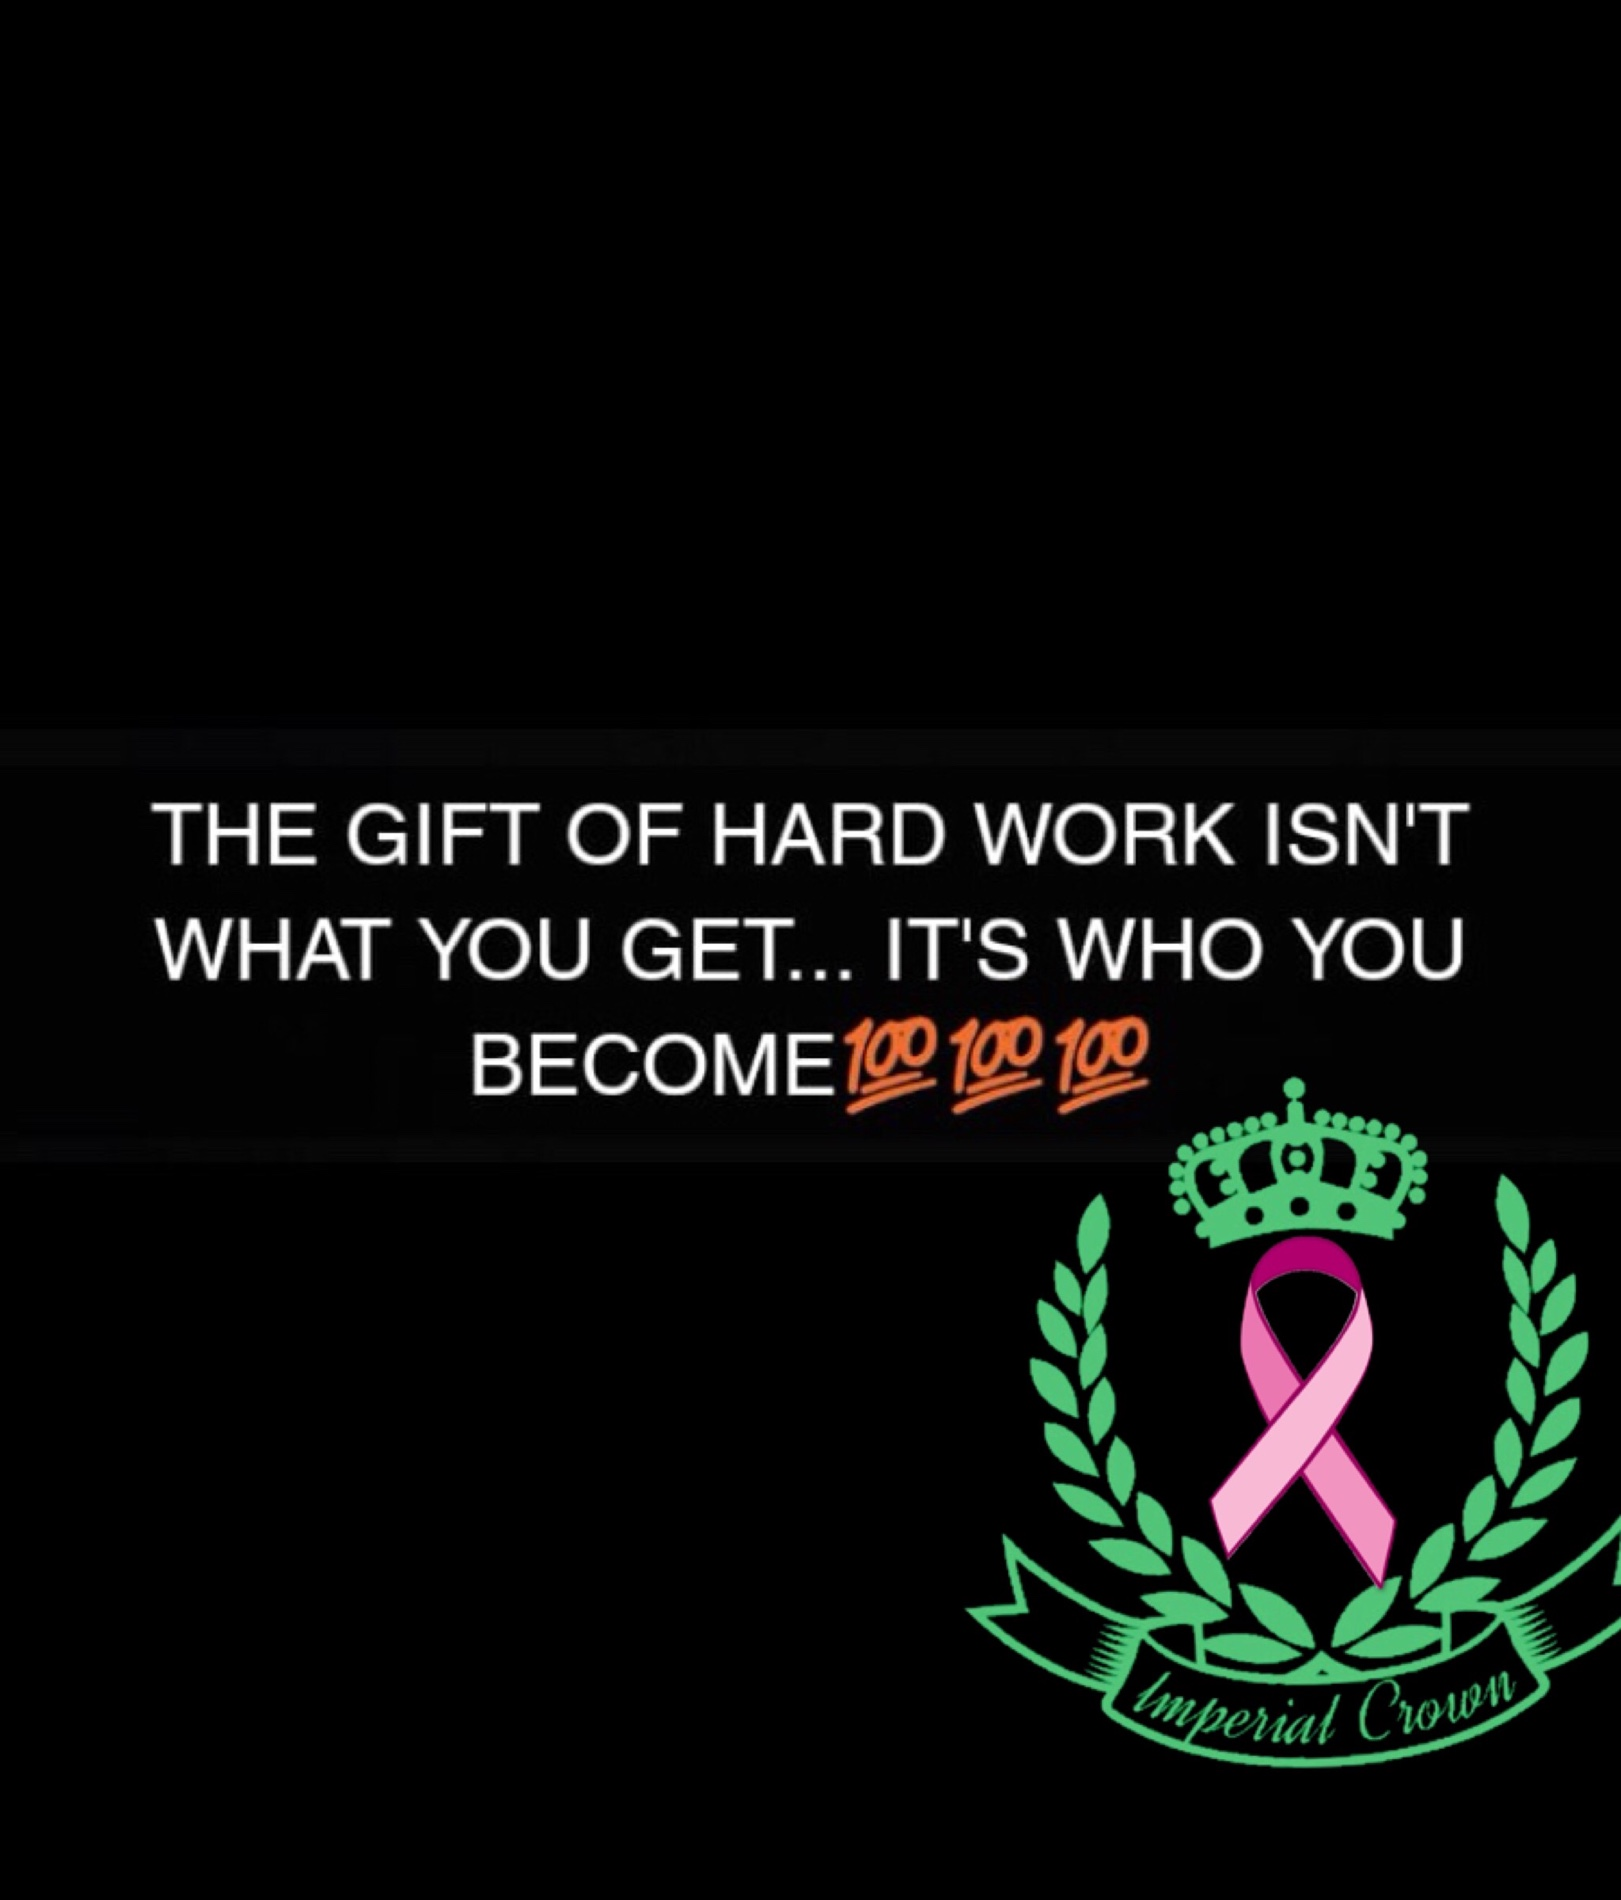 The gift of hard work isn't what you get it's who you become